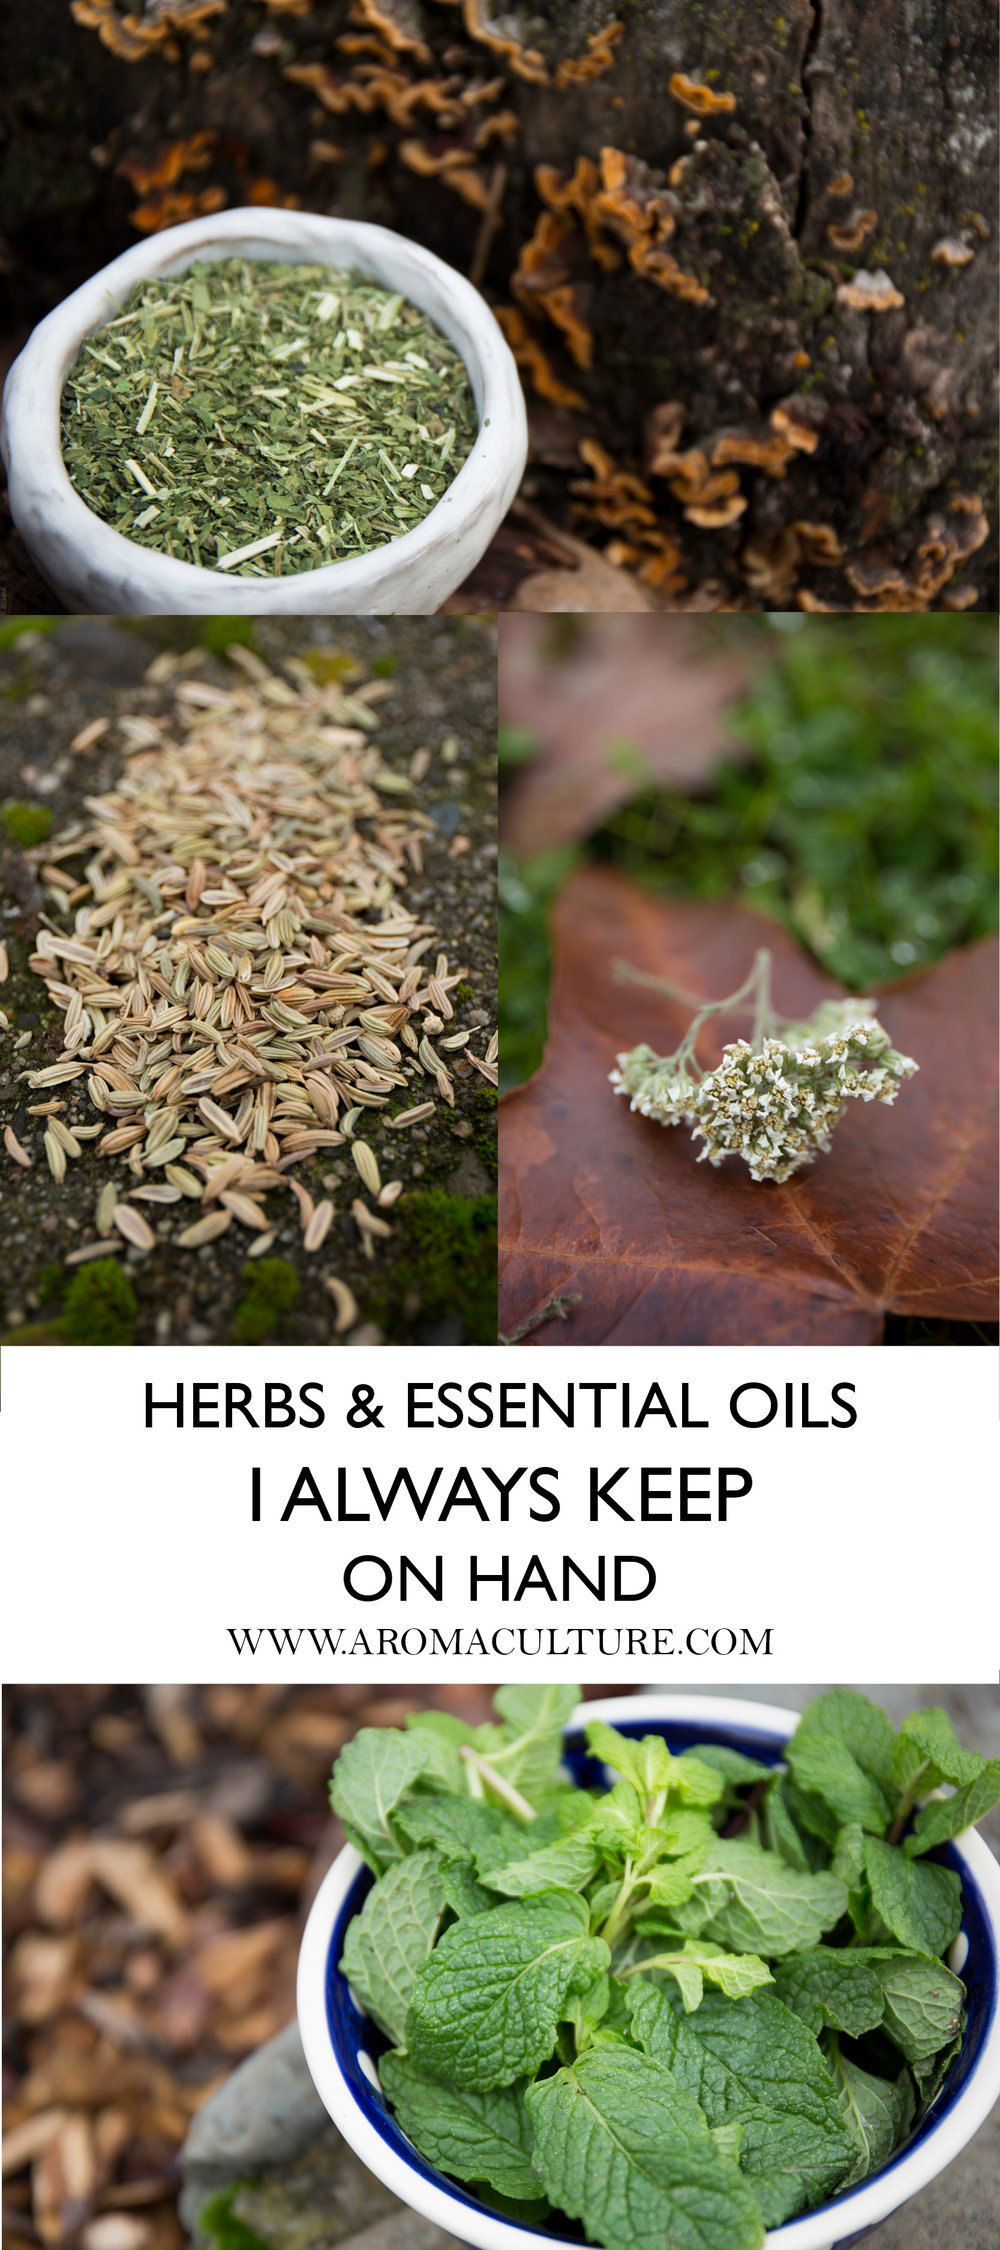 HERBS AND ESSENTIAL OILS I ALWAYS KEEP ON HAND.jpg